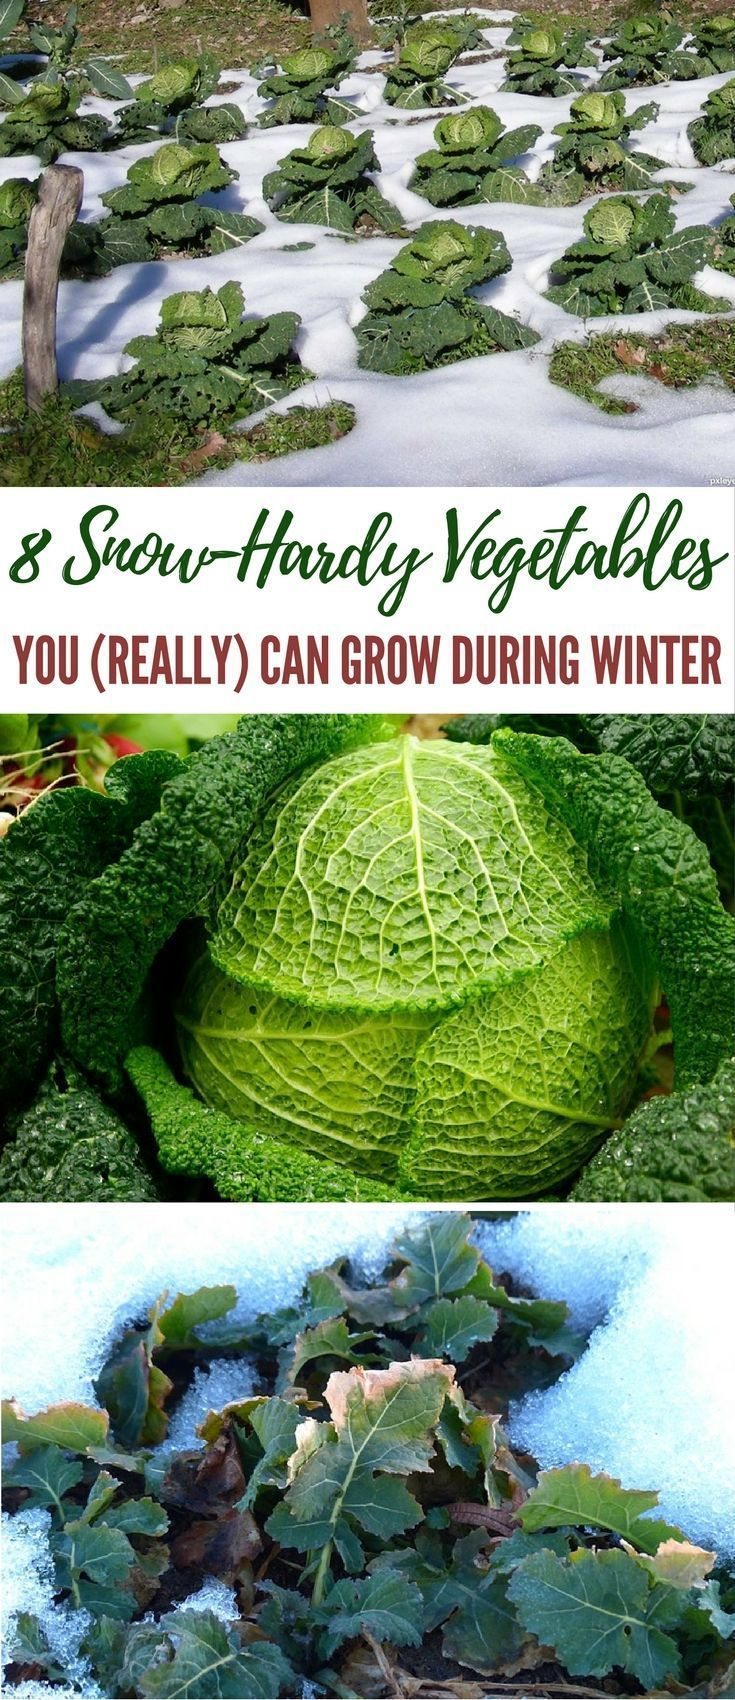 8 Snow-Hardy Vegetables You (Really) Can Grow During Winter - Winter will be here soon, so it's time to start thinking about what vegetables you can grow easily in your survival garden that can make it through the harsh weather. Image by http://pxleyes.com